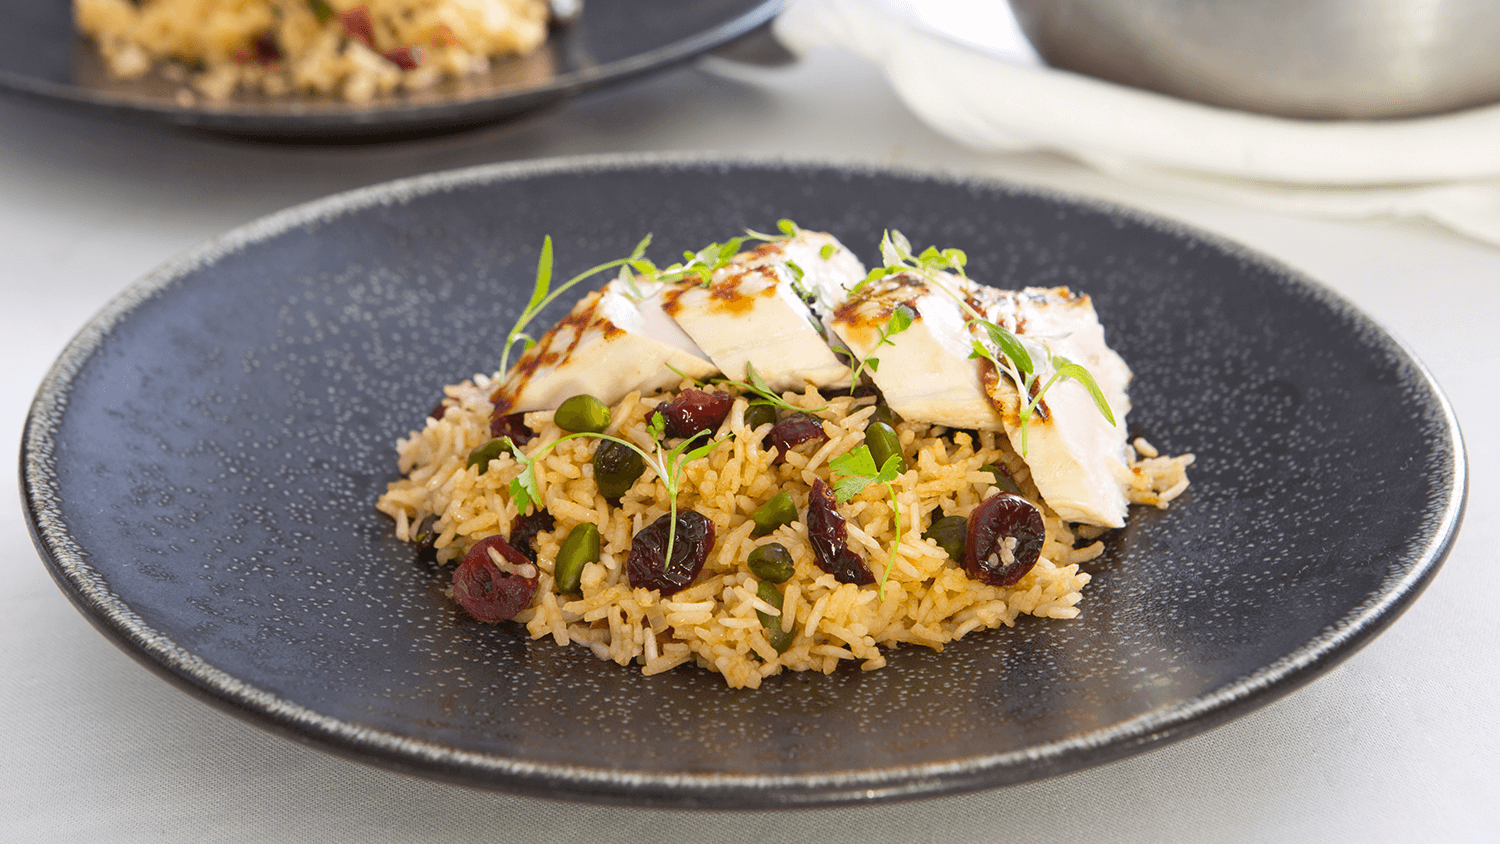 Basmati Pilaf with Turkey, Pistachio, Cranberries, Parsley and Thyme